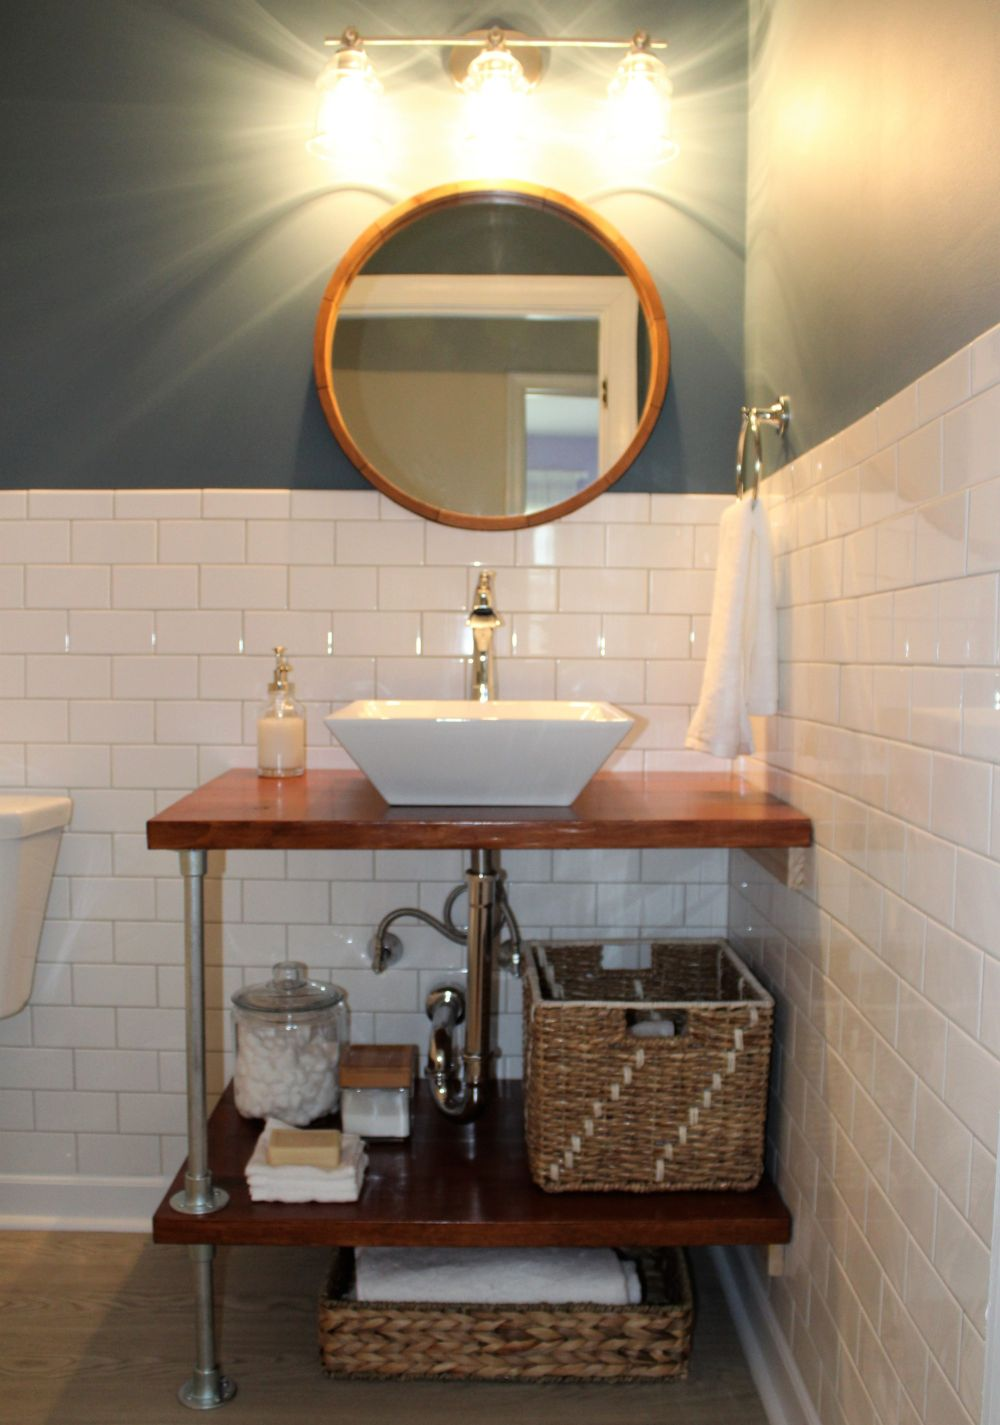 Diy bathroom vanity ideas perfect for repurposers for Bathroom vanity sink ideas